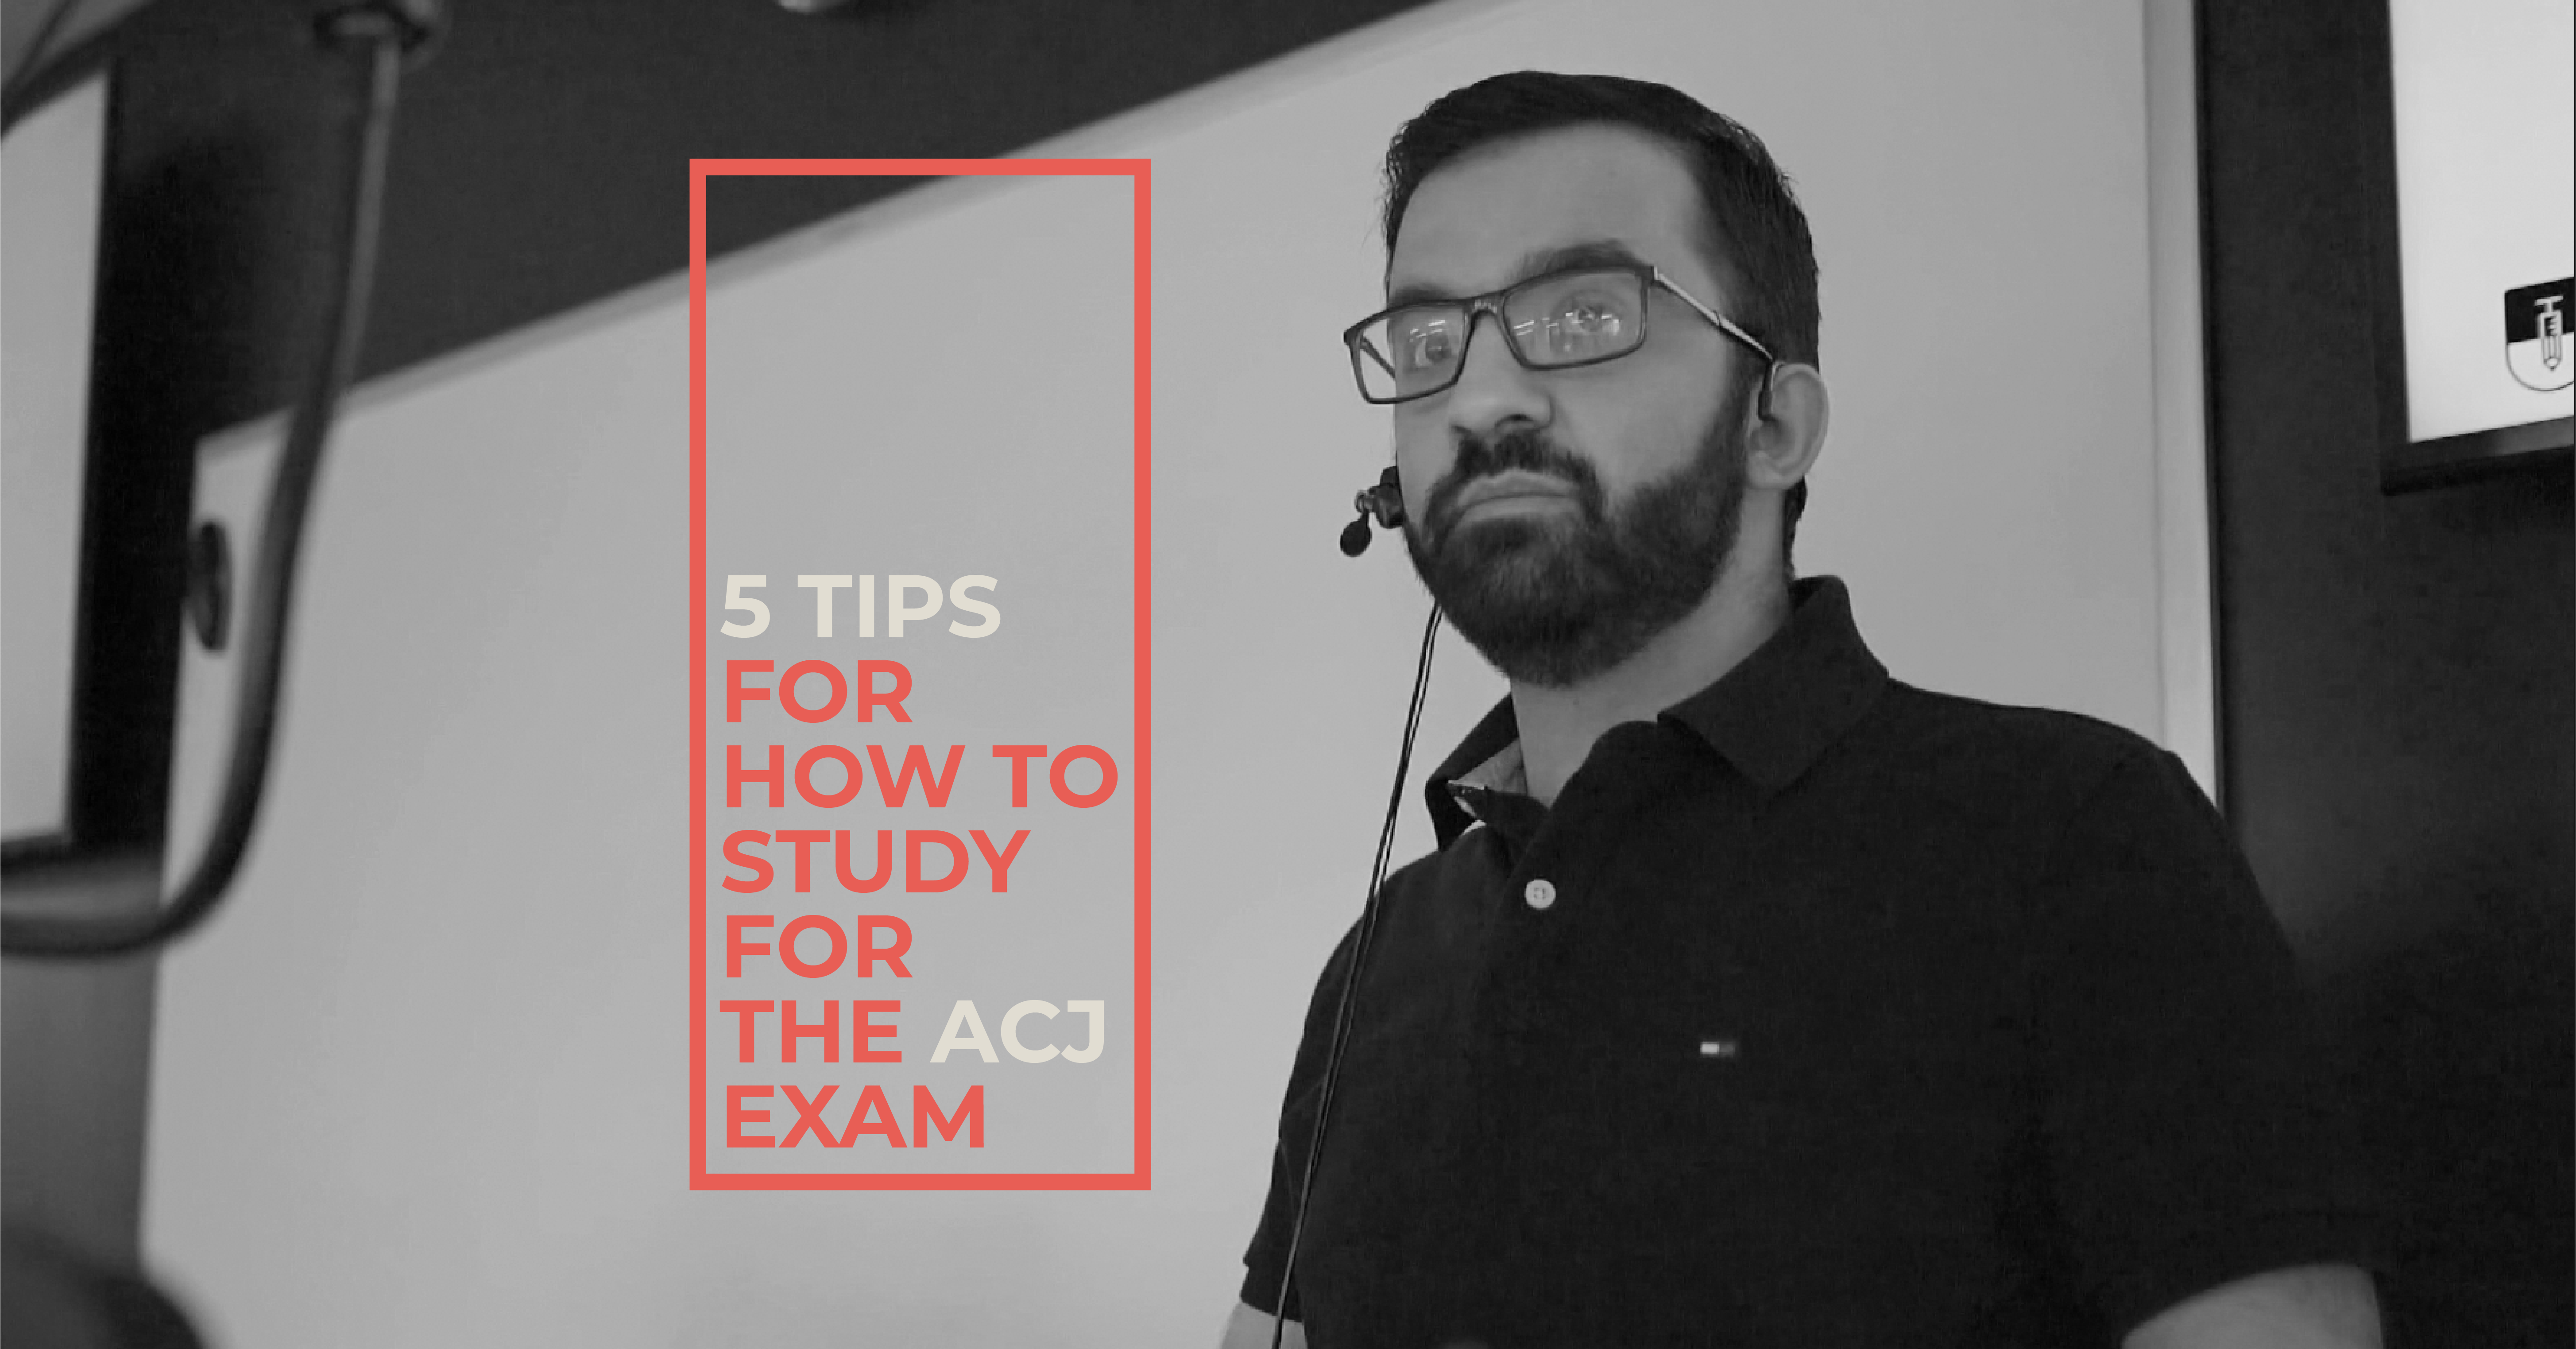 5 Tips for How to Study for the ACJ Exam with Dr. Khalid Khalid